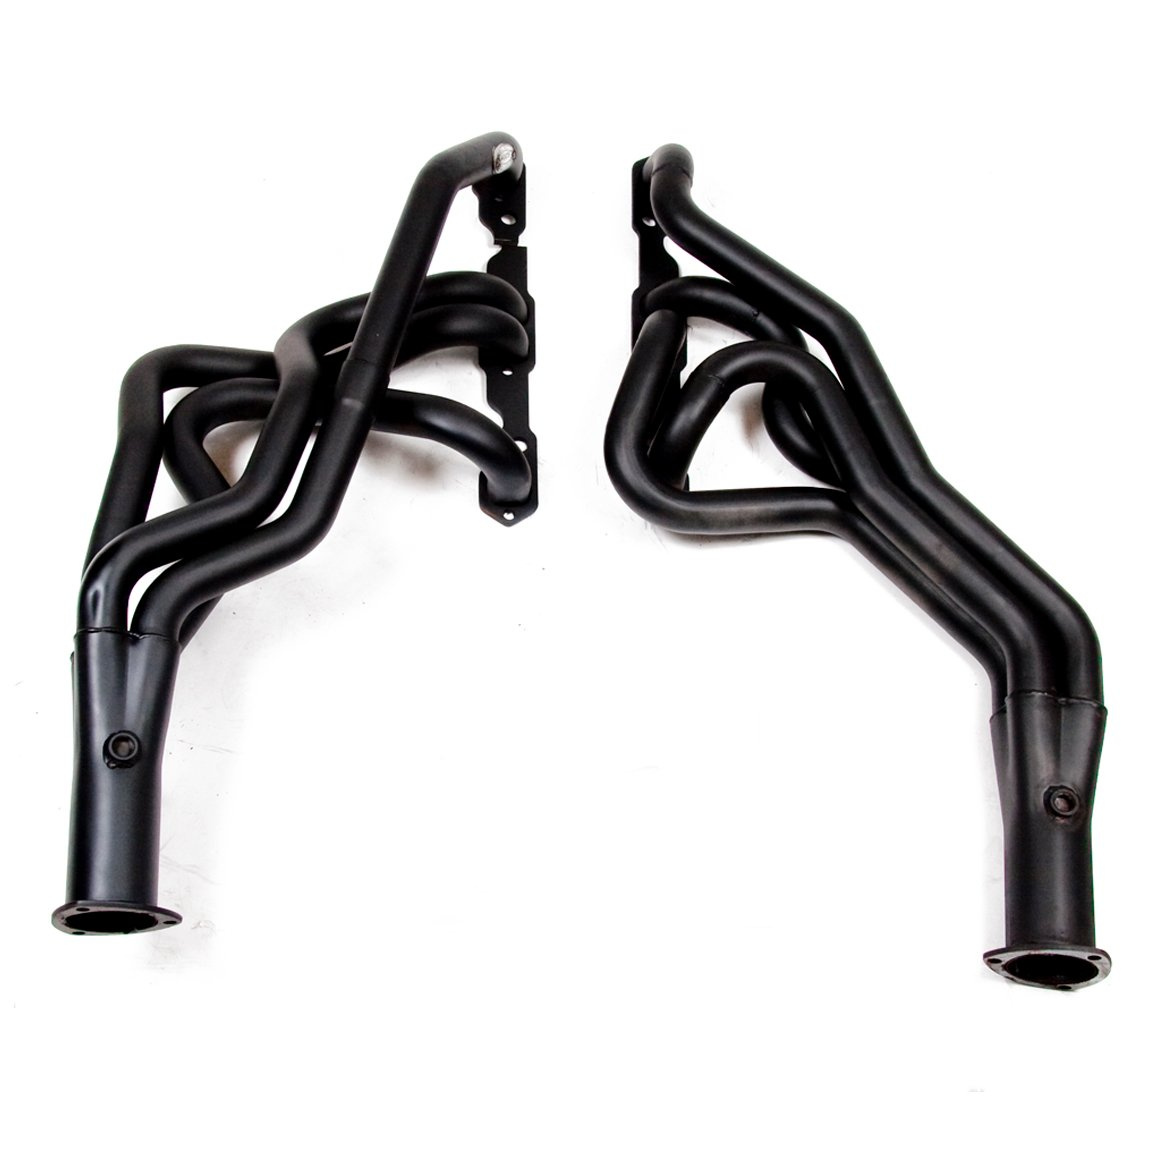 Hooker Super Comp Headers 6224HKR 79-93 Ford Mustang